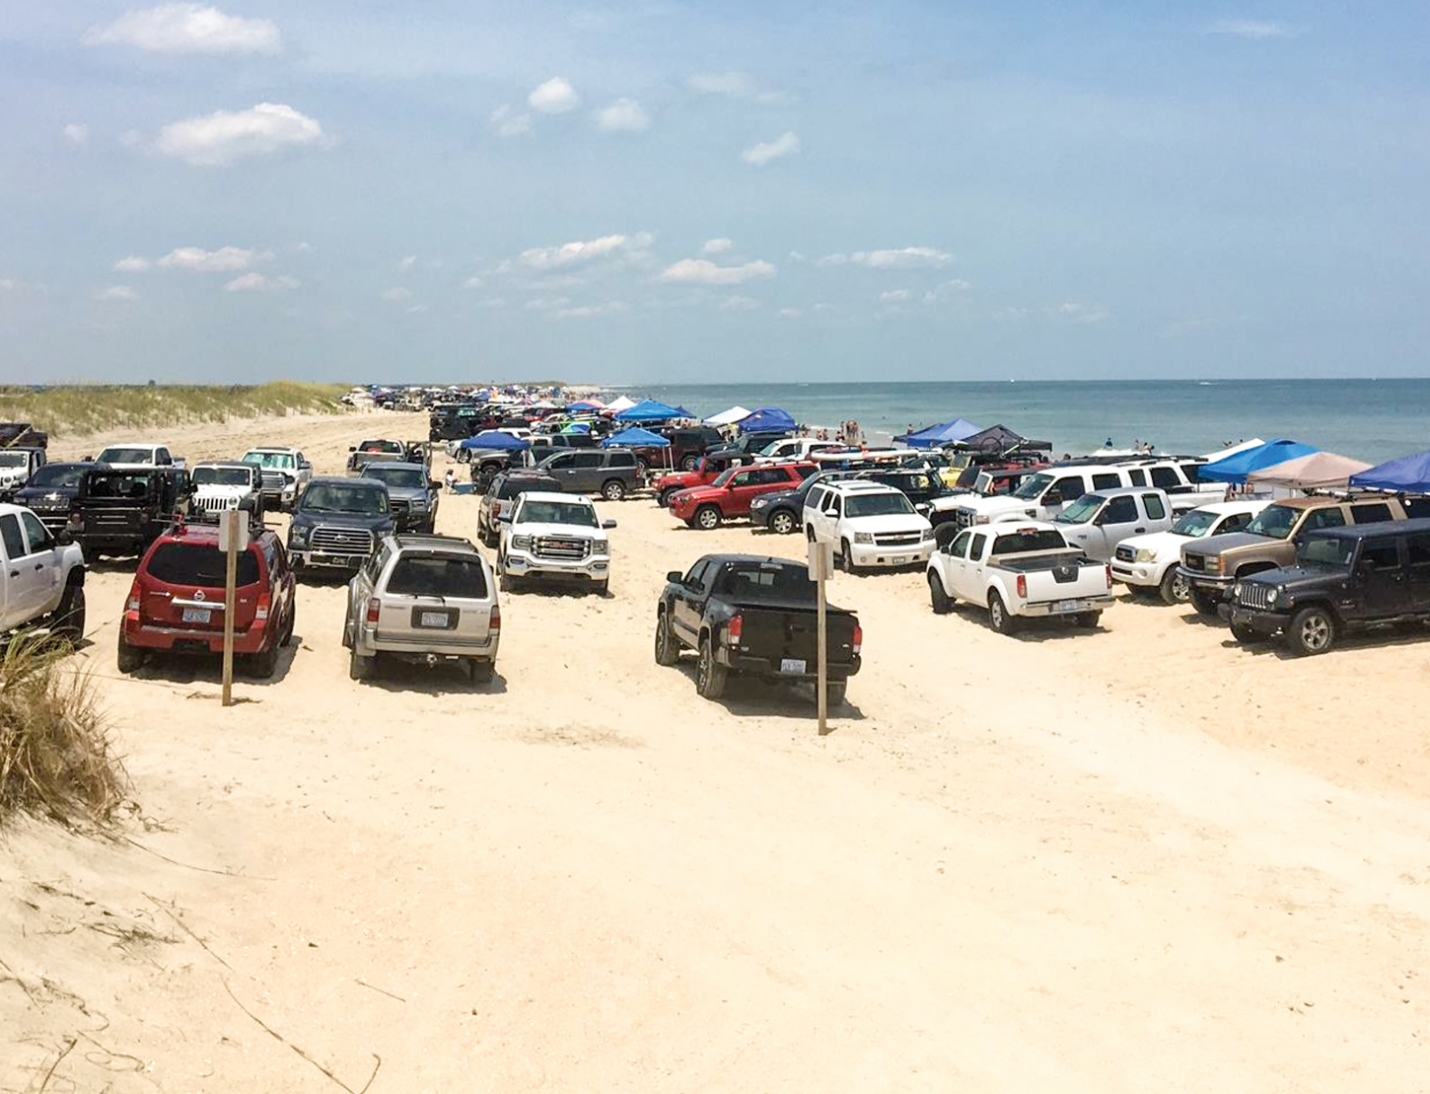 The Town of Carolina Beach has resumed the sale of daily passes for vehicles to enter Freeman Park on the North End of Pleasure Island following Hurricane Dorian. Restrictions on camping and prohibition of vehicle access to certain areas of the park will continue due to high tide conditions and erosion.